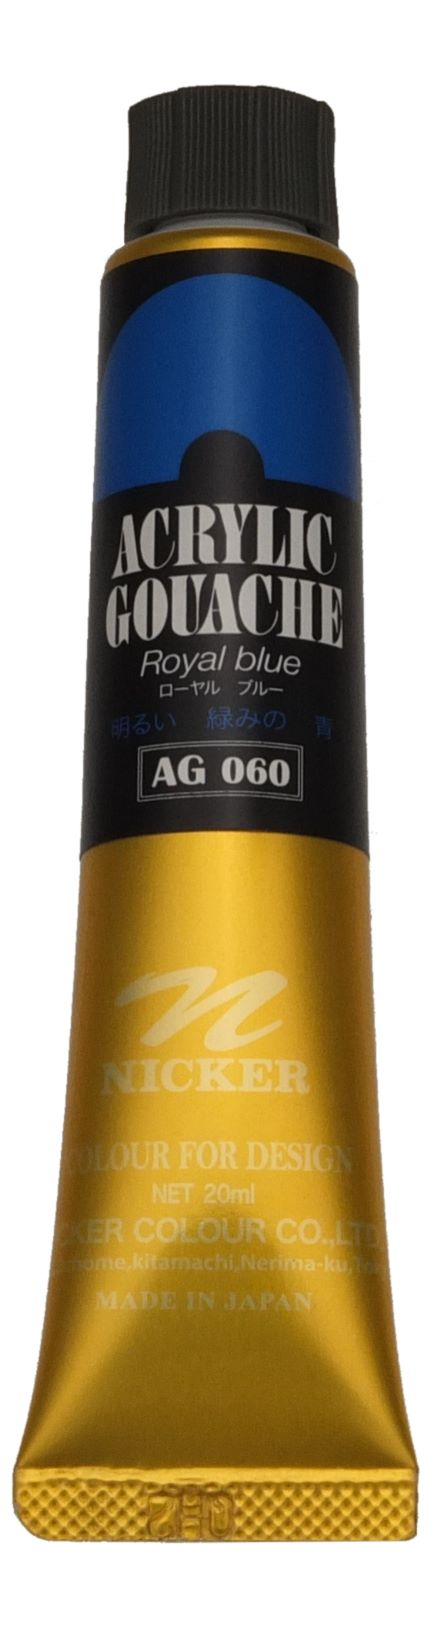 ACRYLIC GOUACHE 20ml AG060 ROYAL BLUE